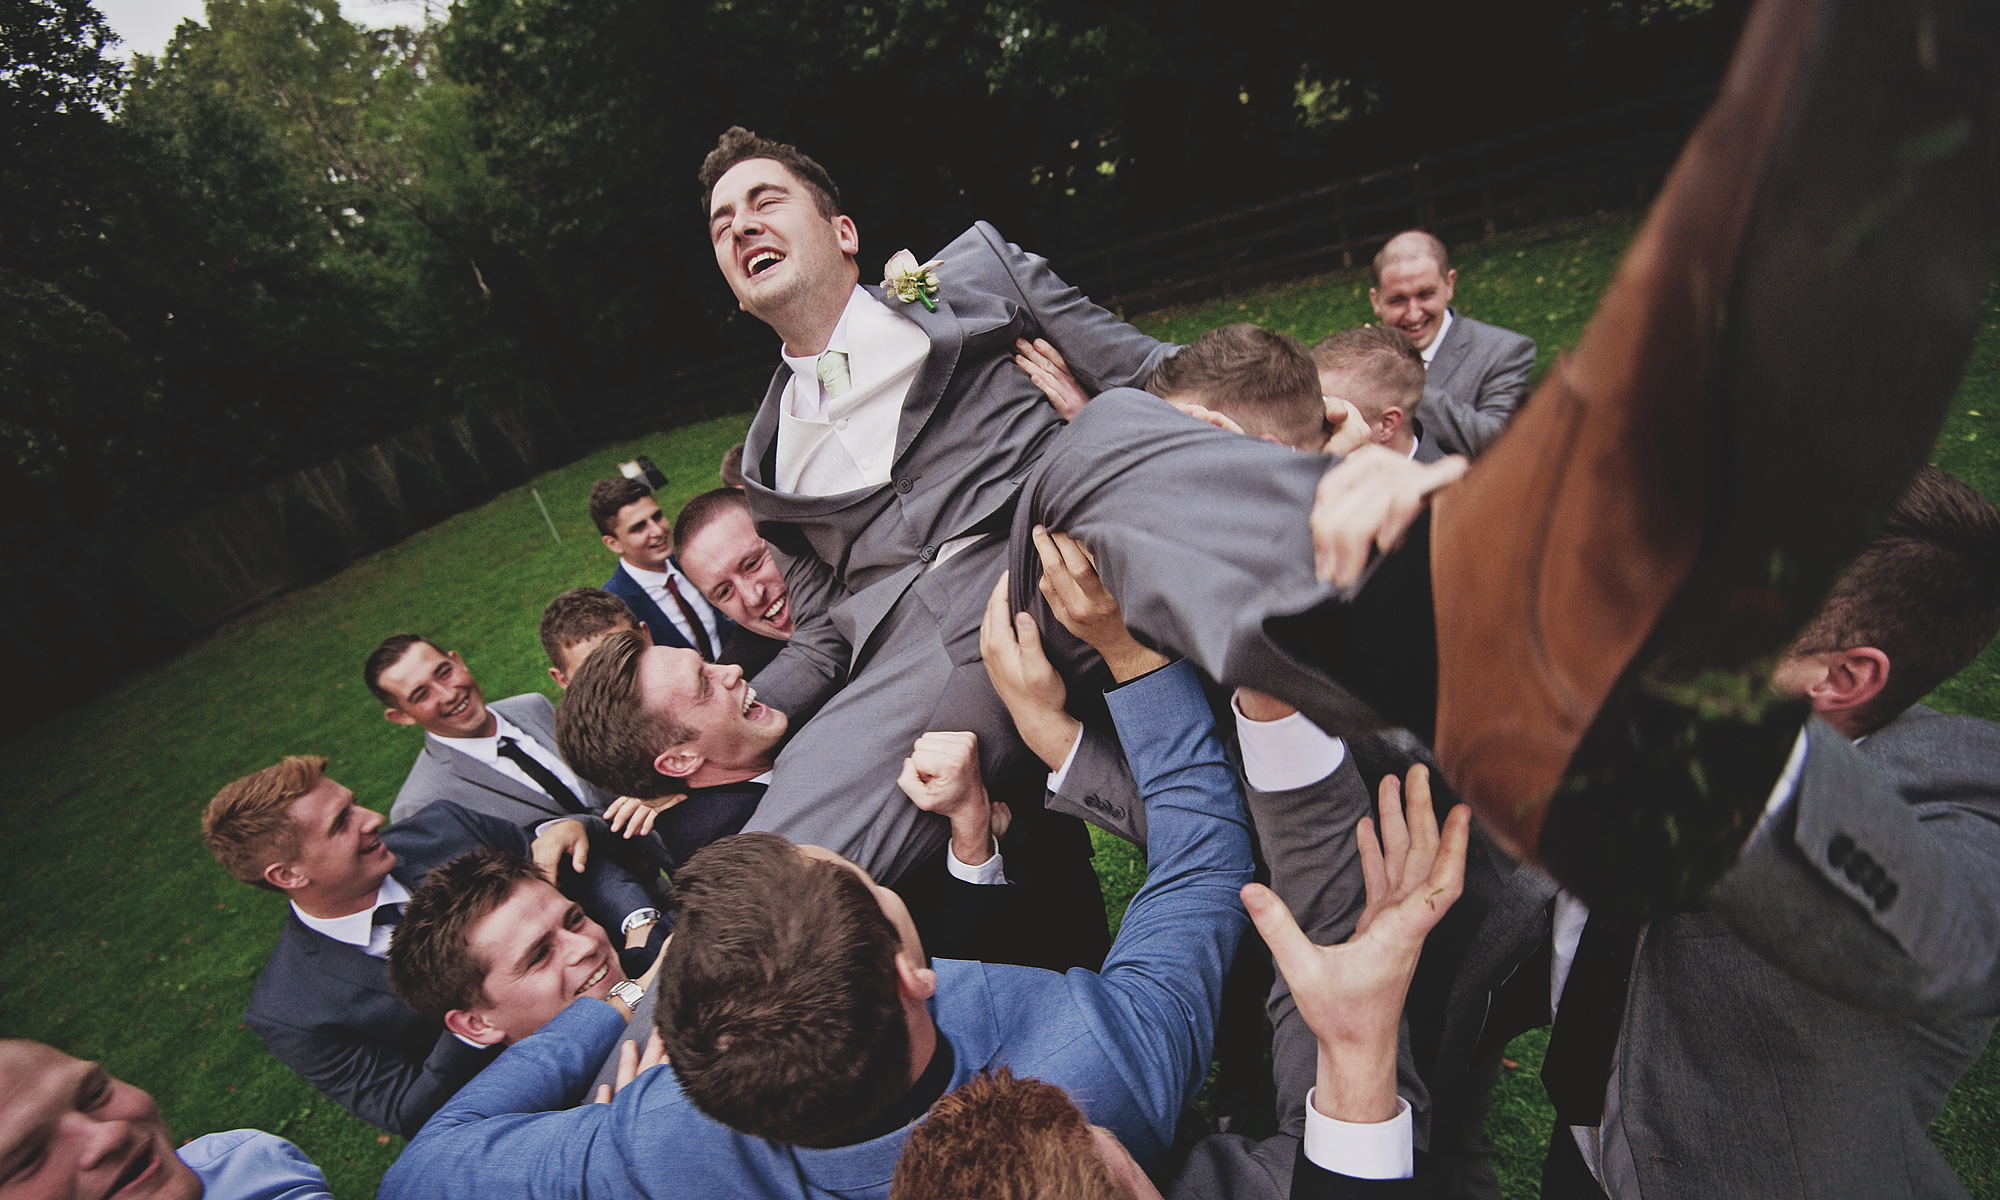 Groom being held aloft by his friends on his wedding day - documentary photo